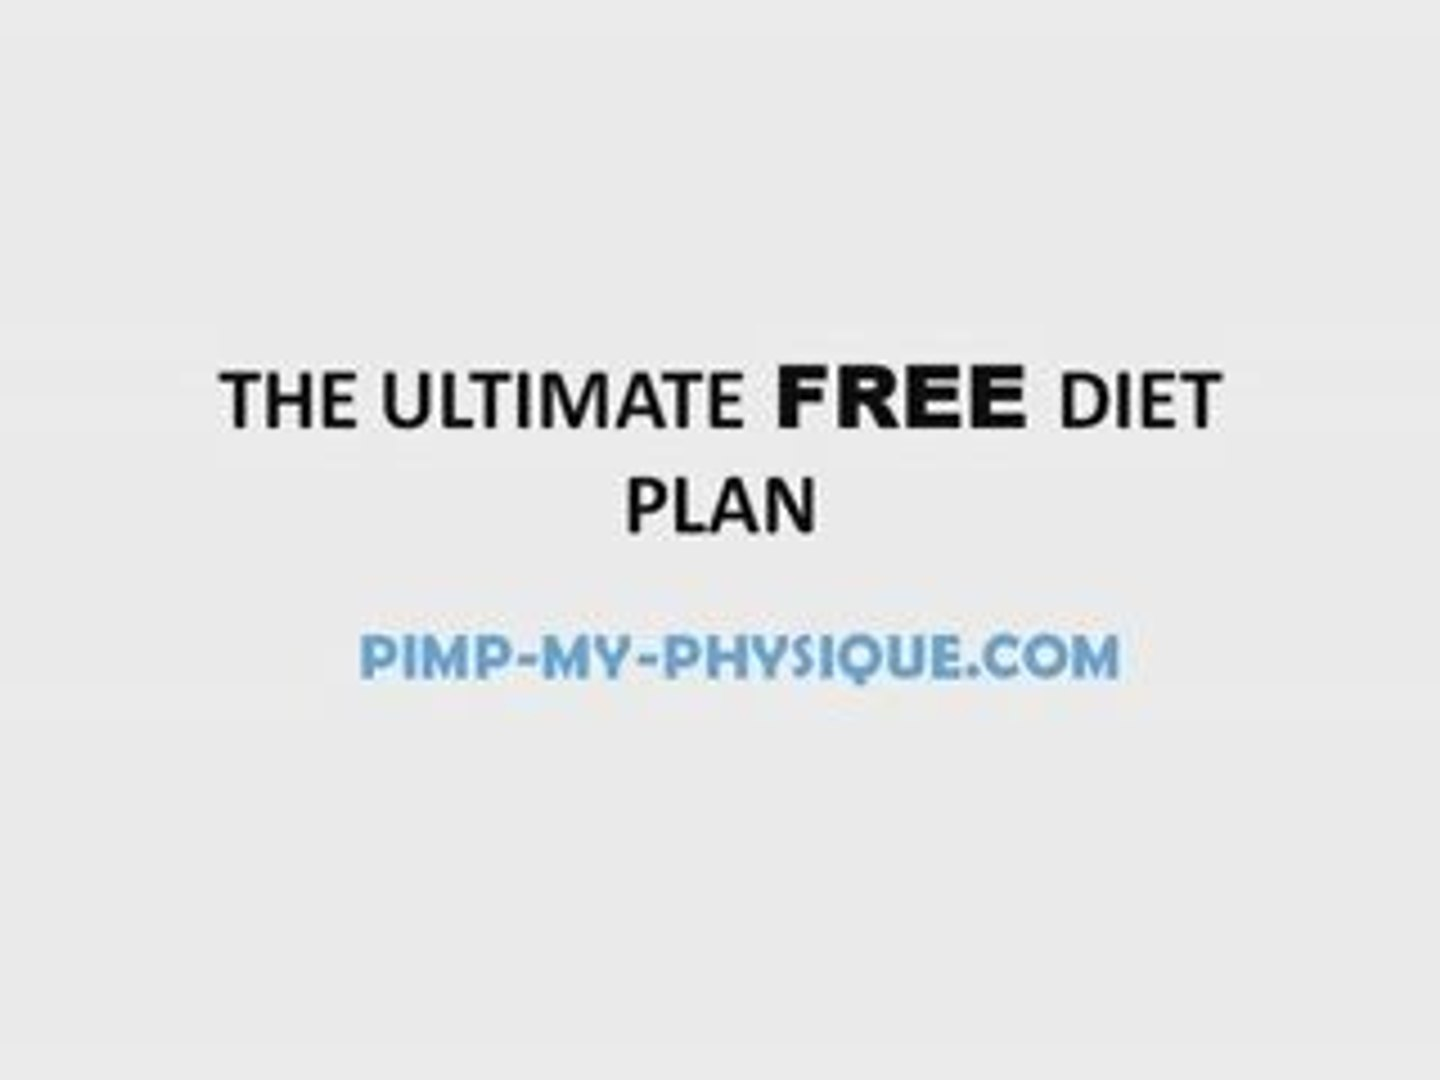 free diet plan. free exercise plan. free weight loss guide